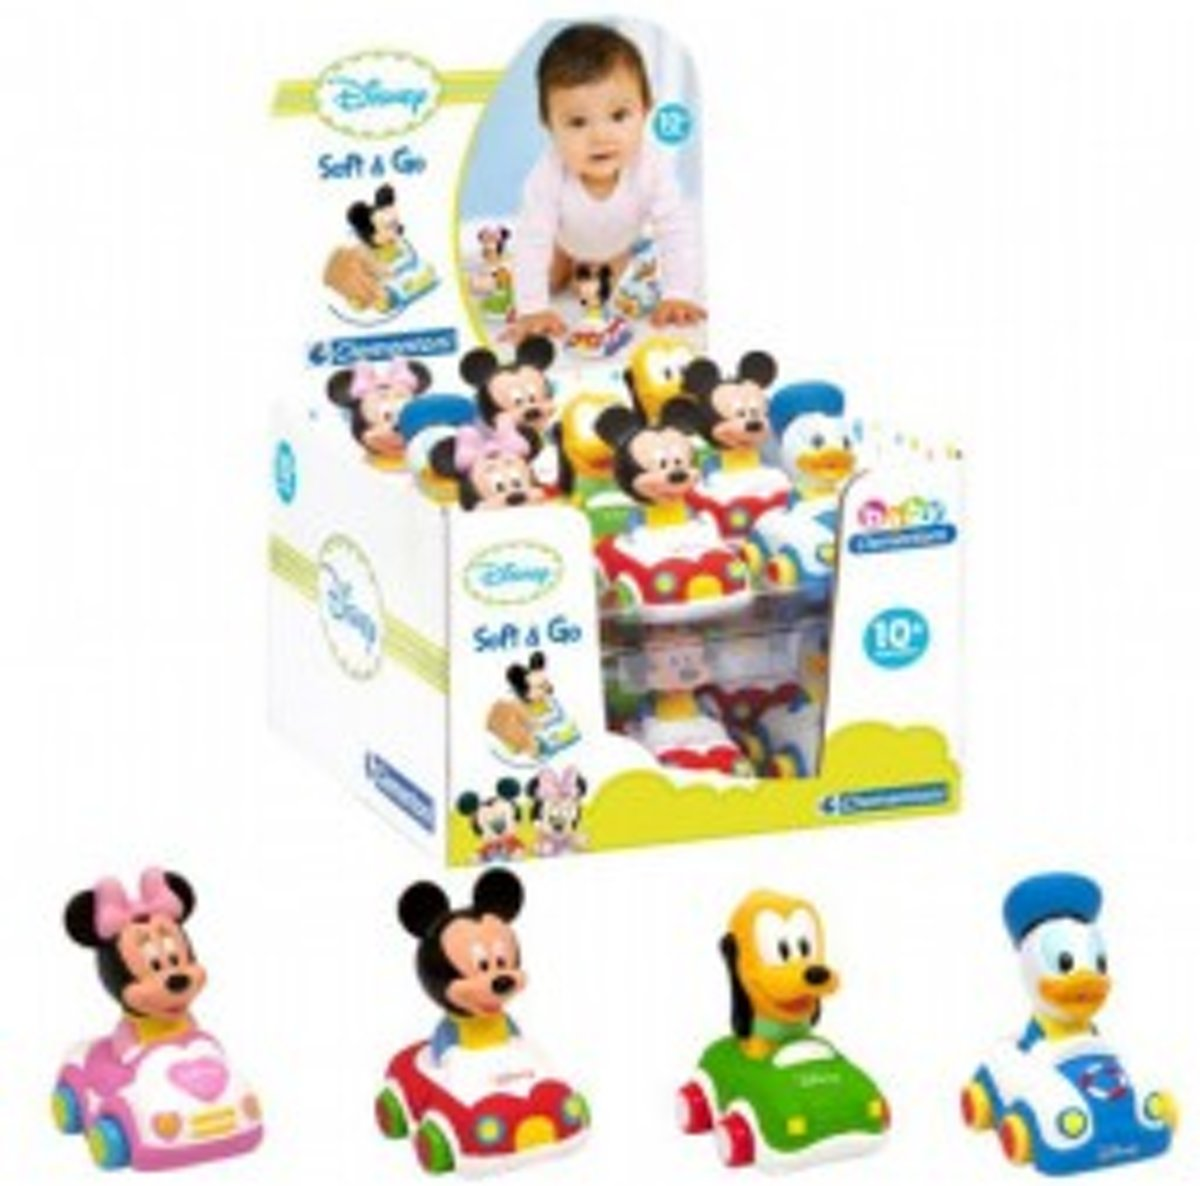 soft & go cars Mickey Mouse - 1 stuks